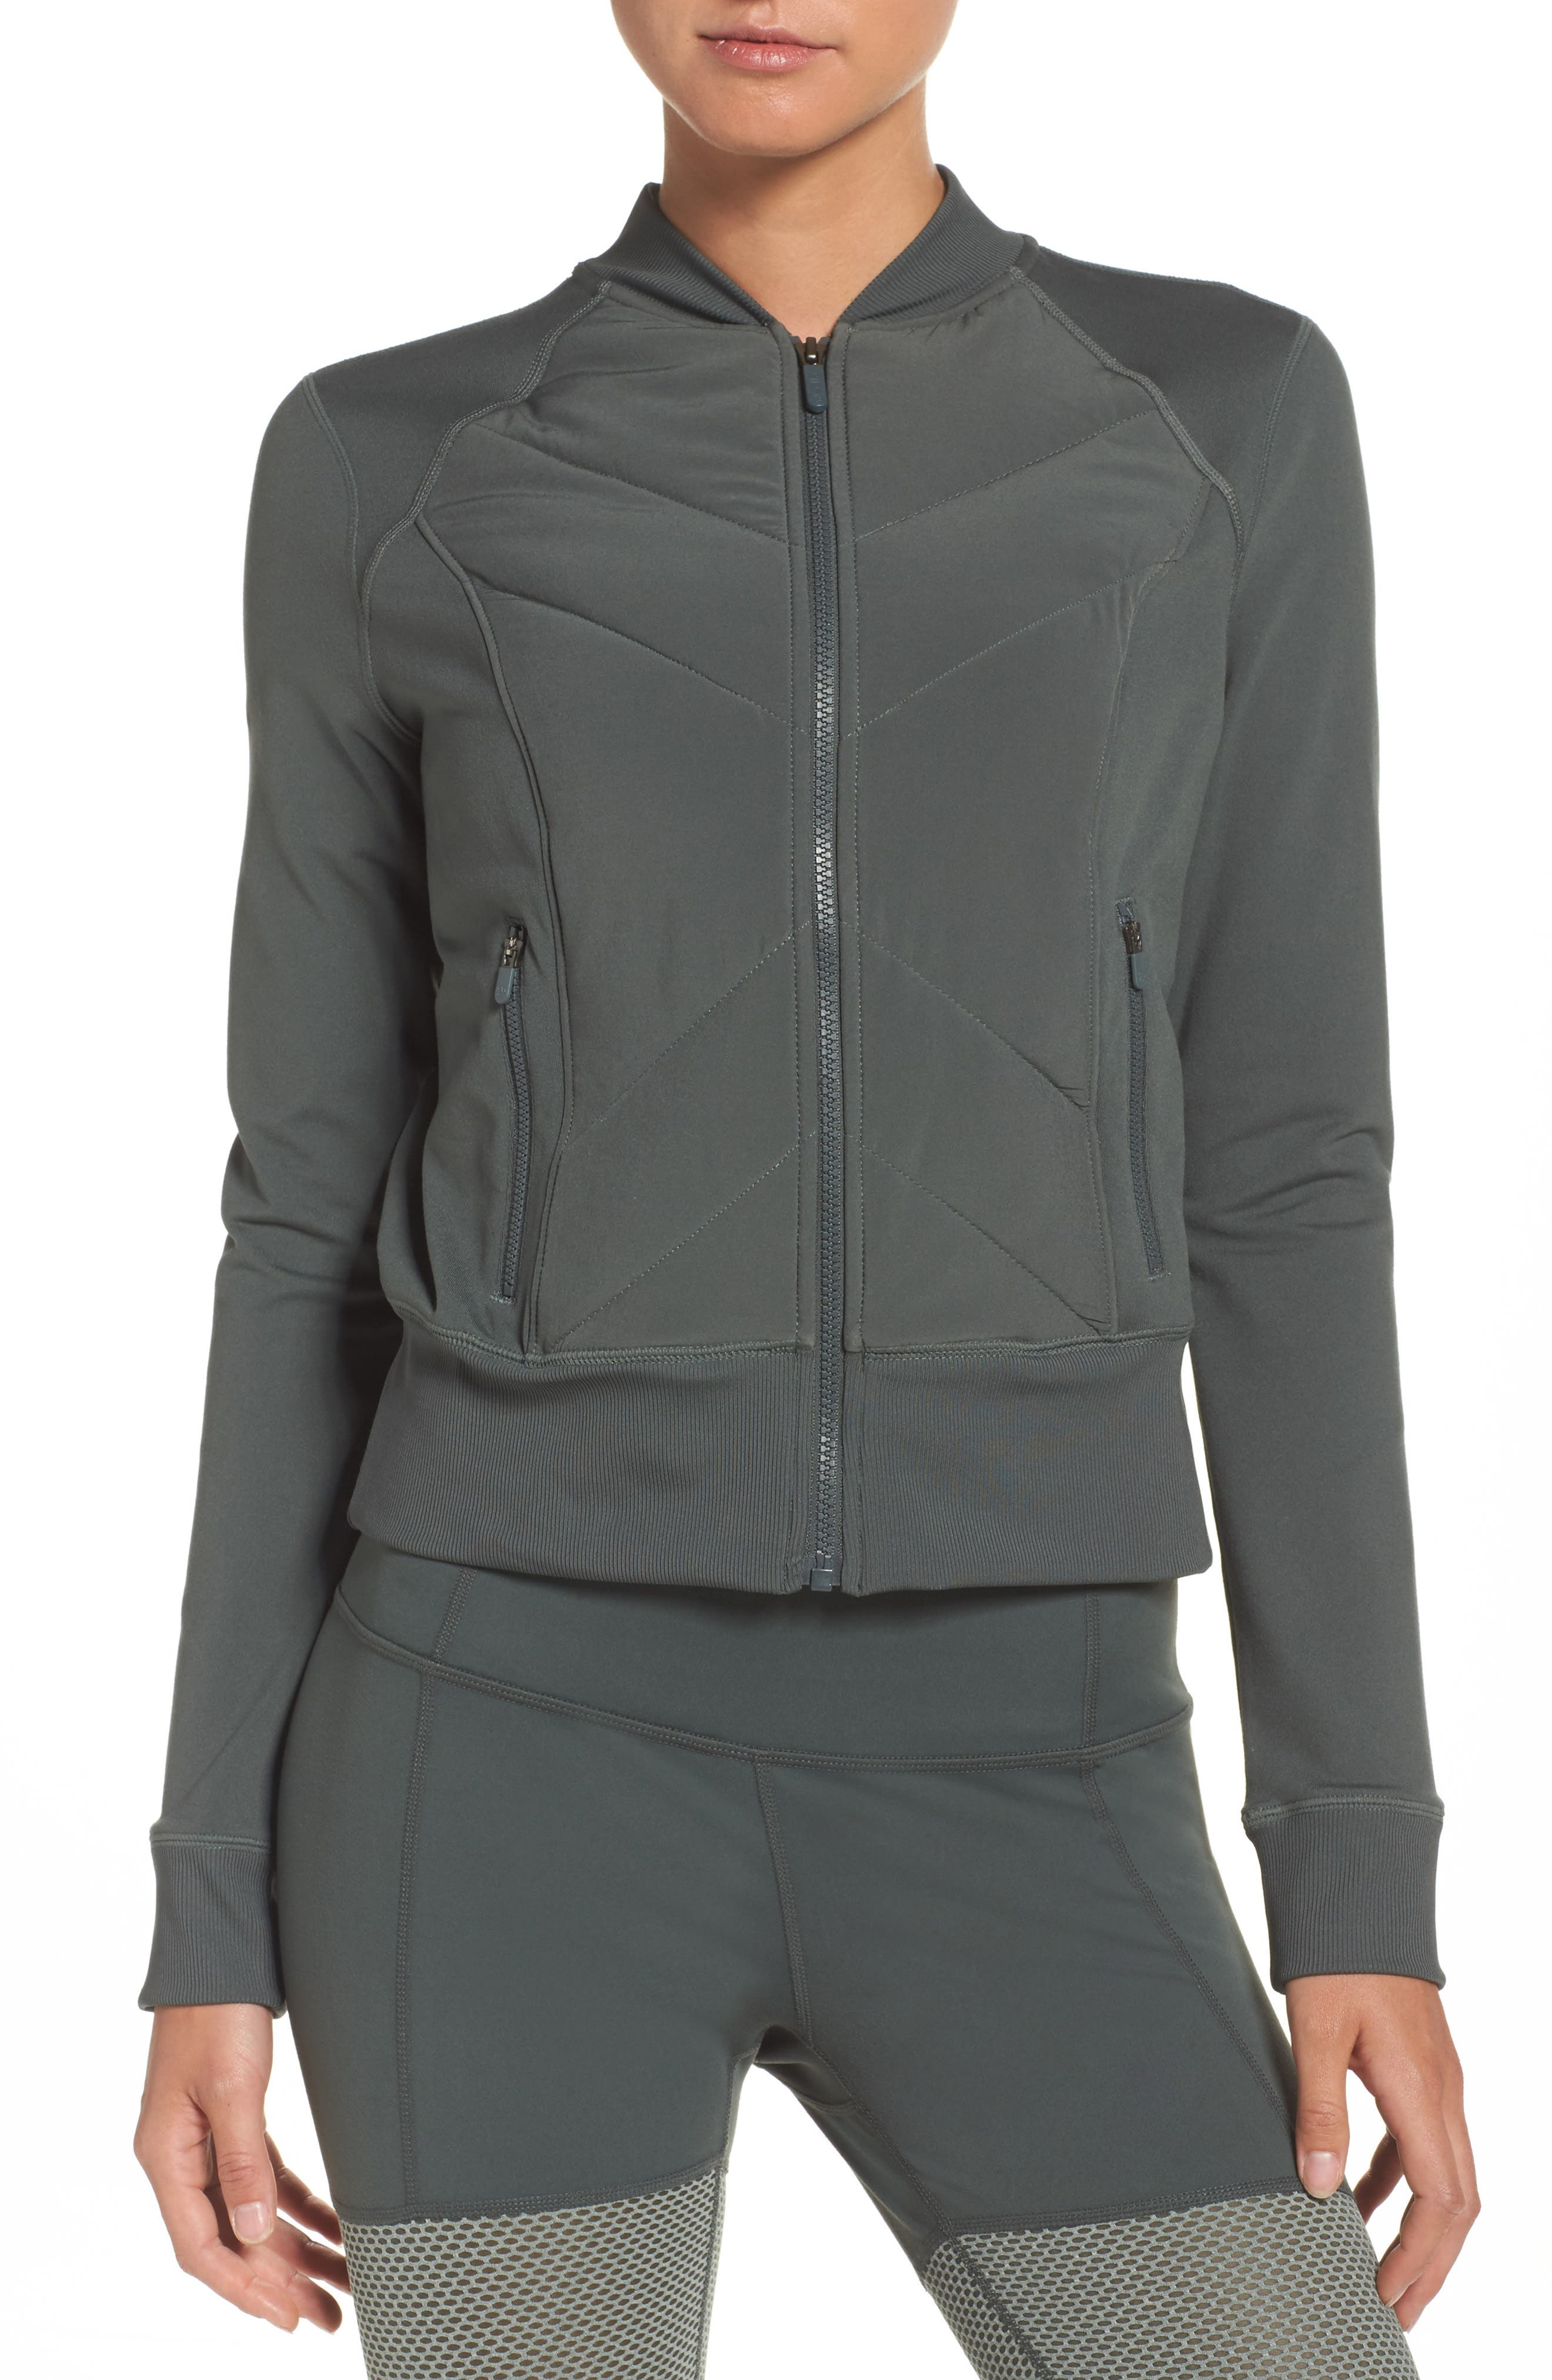 Wear It Out Bomber Jacket,                         Main,                         color, Grey Urban